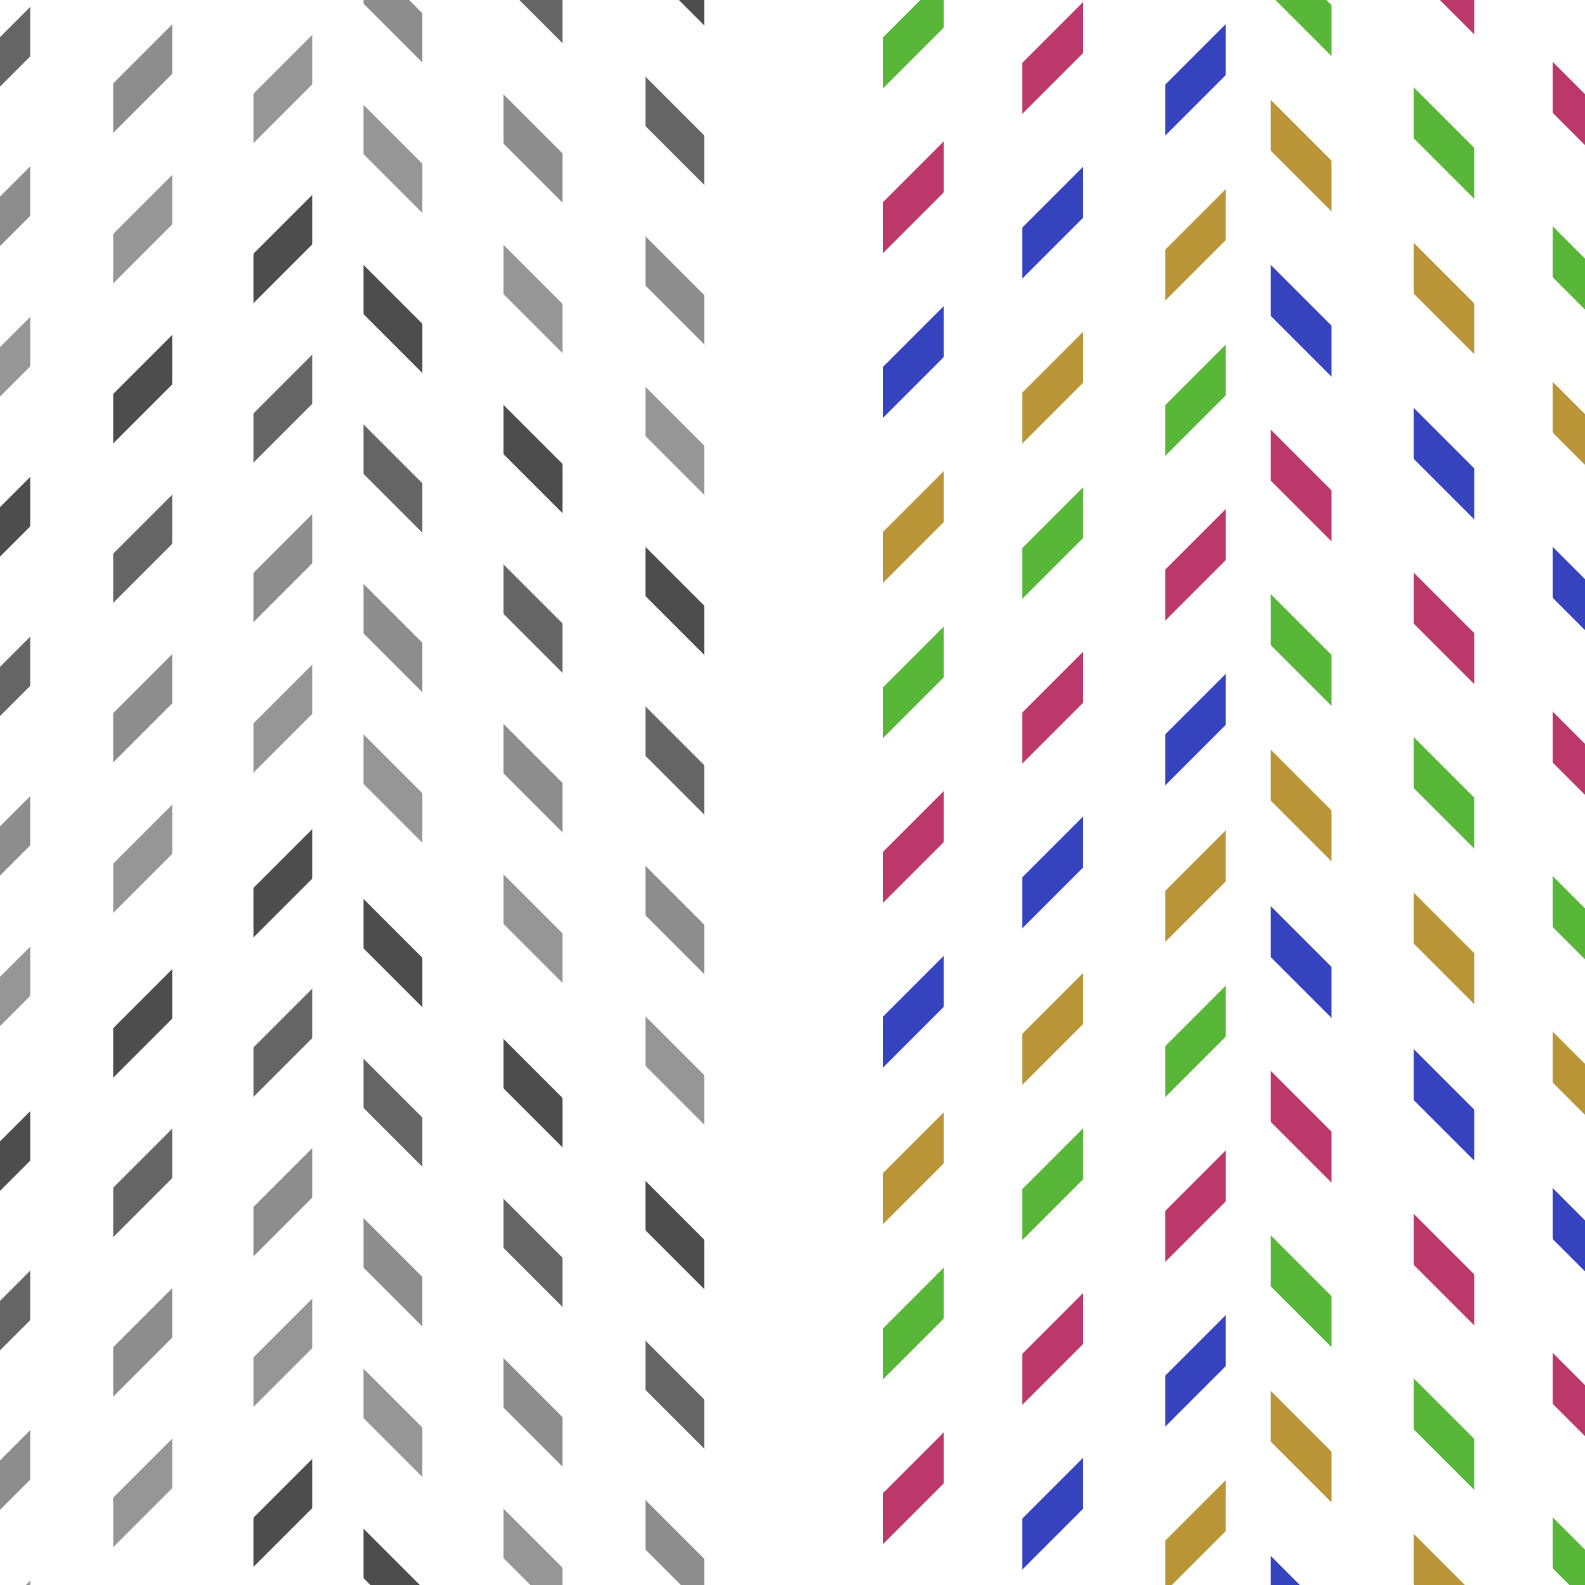 patterns.png